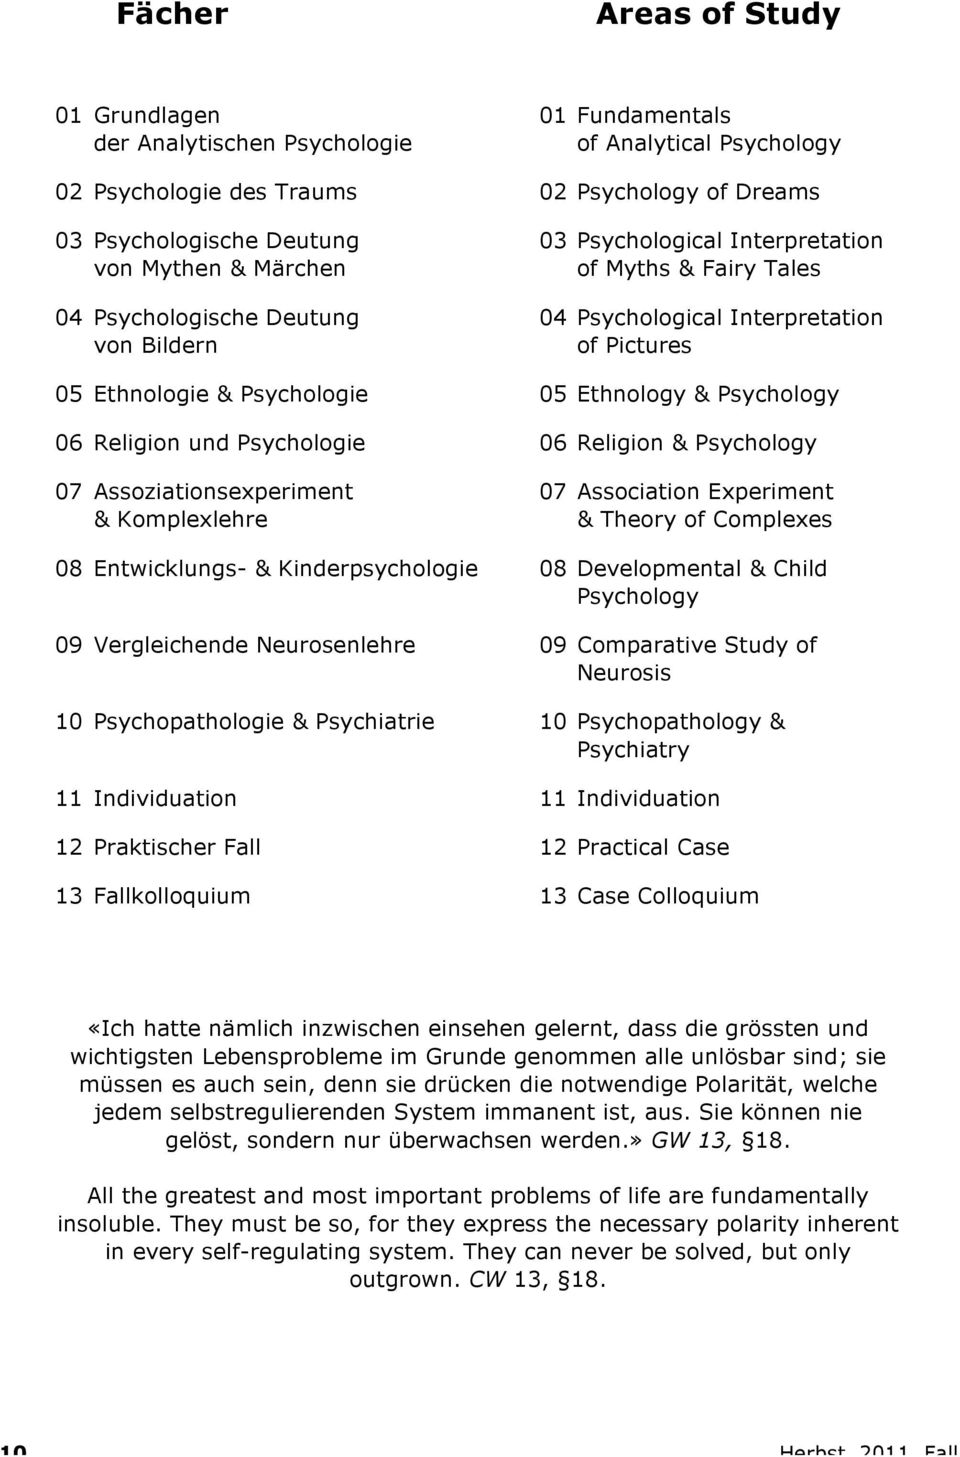 06 Religion und Psychologie 06 Religion & Psychology 07 Assoziationsexperiment & Komplexlehre 07 Association Experiment & Theory of Complexes 08 Entwicklungs- & Kinderpsychologie 08 Developmental &